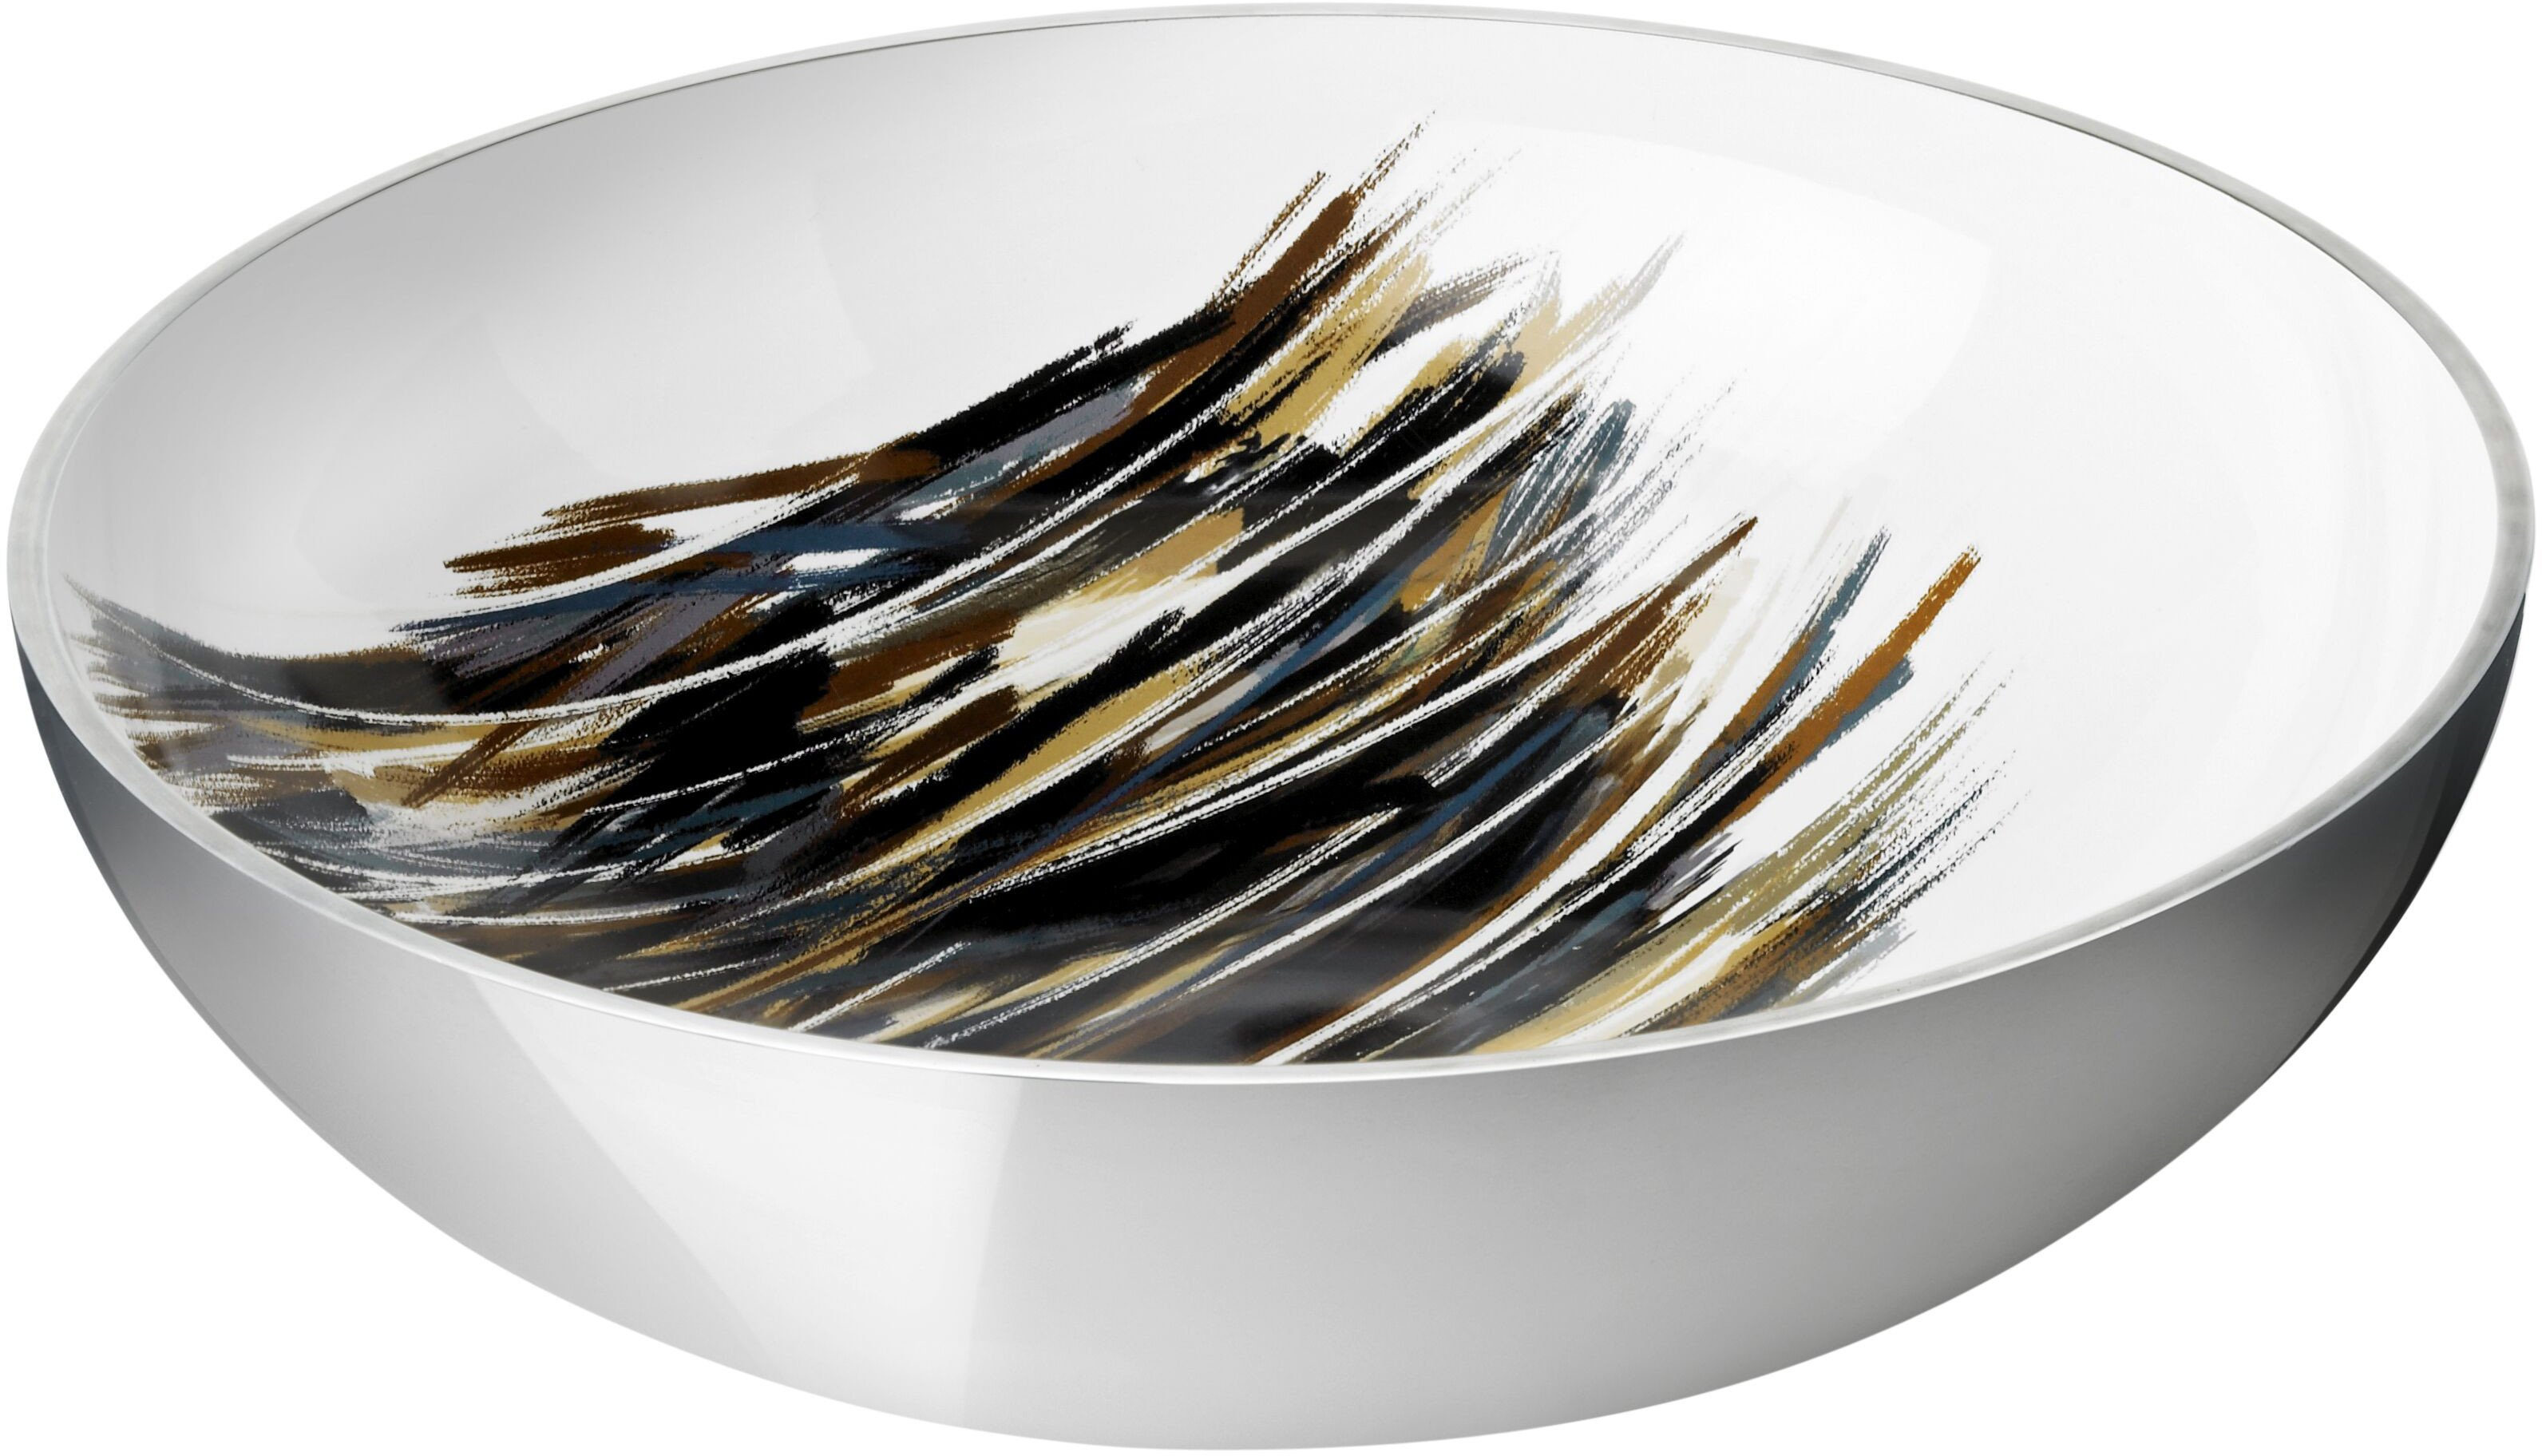 Stockholm Lignum Bowl M by Bernadotte & Kylberg for Stelton